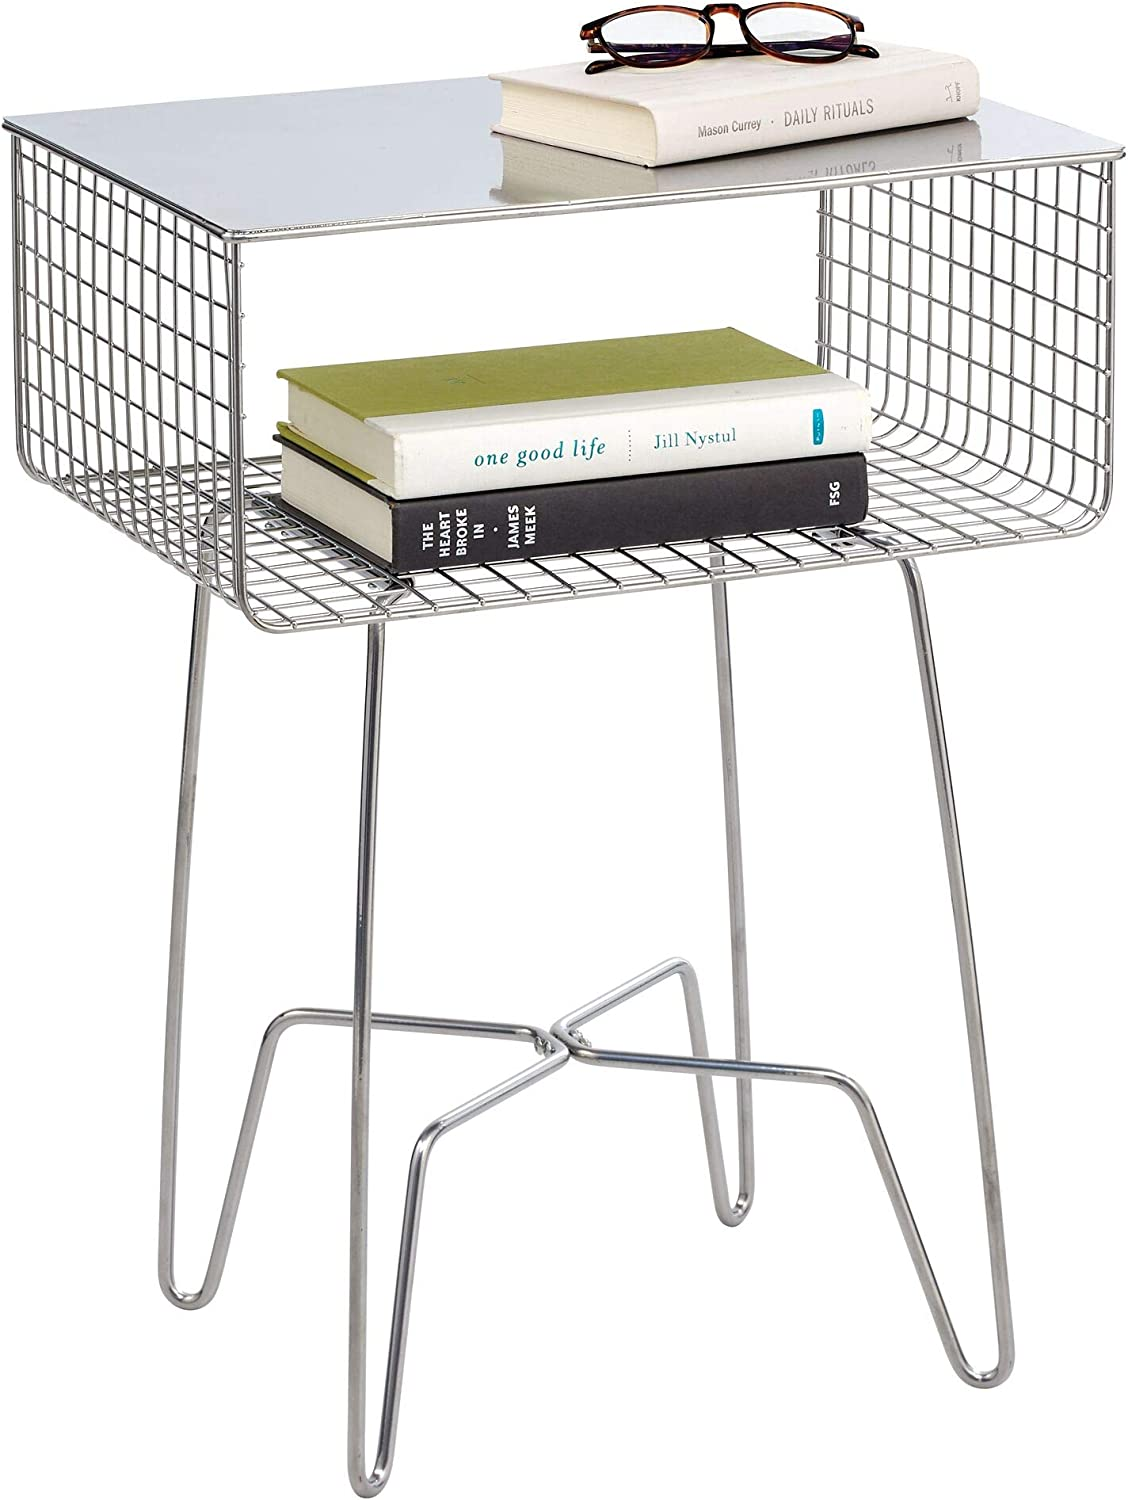 mDesign Modern Farmhouse Side/End Table - Metal Design - Open Storage Shelf Basket, Hairpin Legs - Sturdy Vintage, Rustic, Industrial Home Decor Accent Furniture for Living Room, Bedroom - Chrome